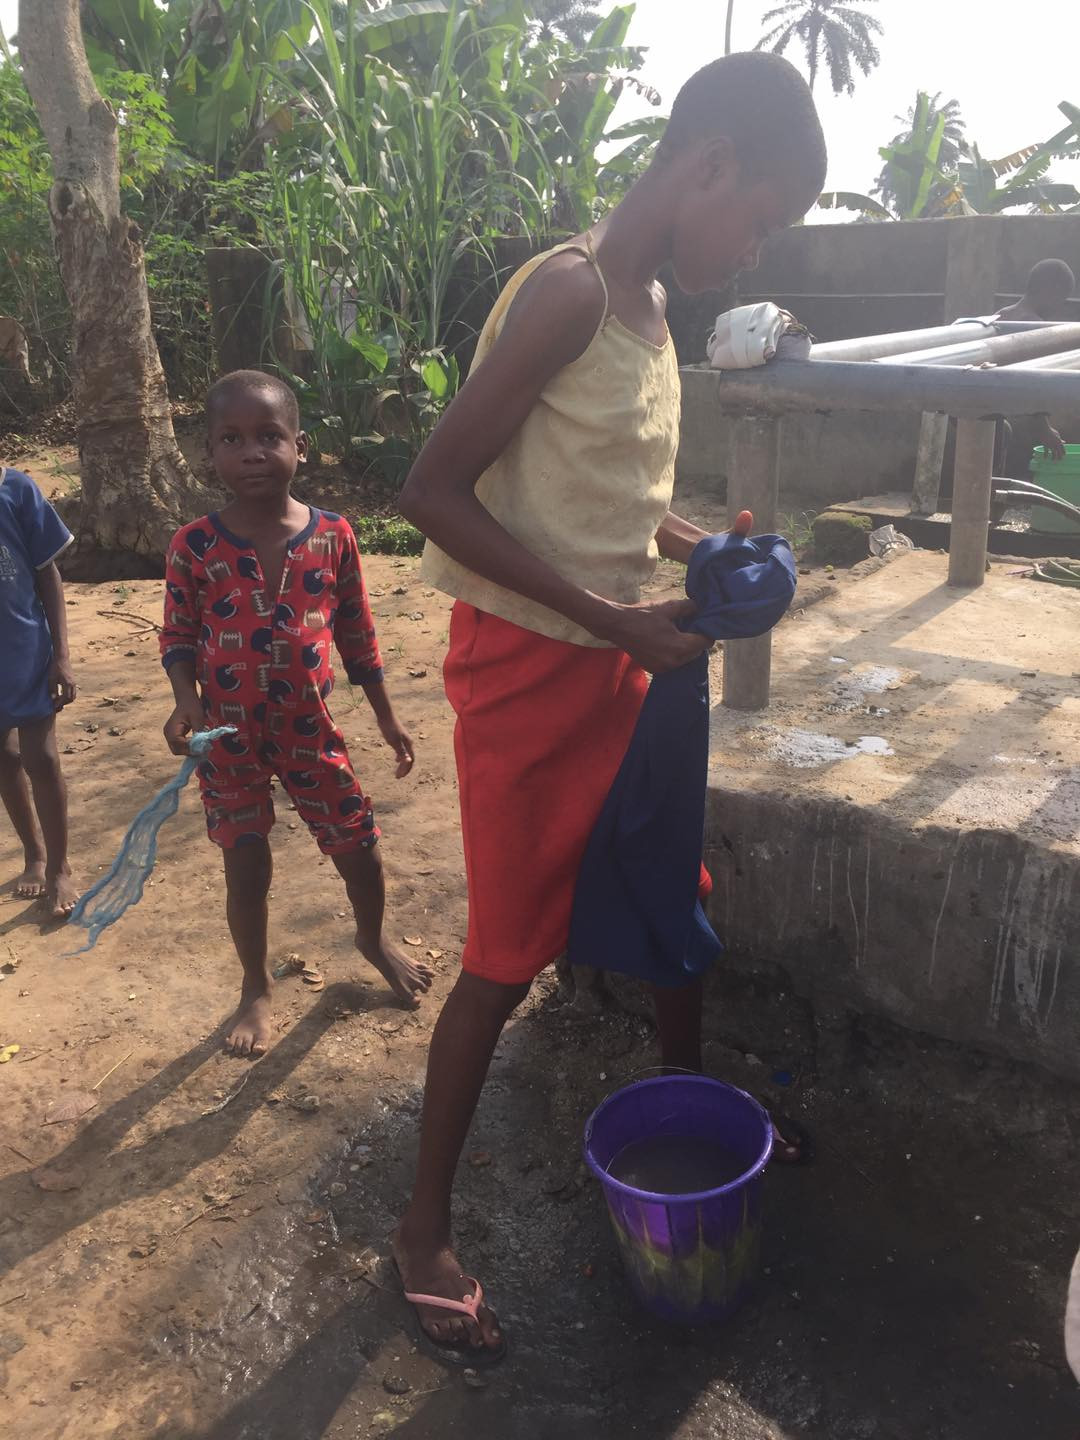 I was discriminated against, abused, slept in abandoned buildings and bush - 13-year-old girl rescued in Akwa Ibom shares her ordeal